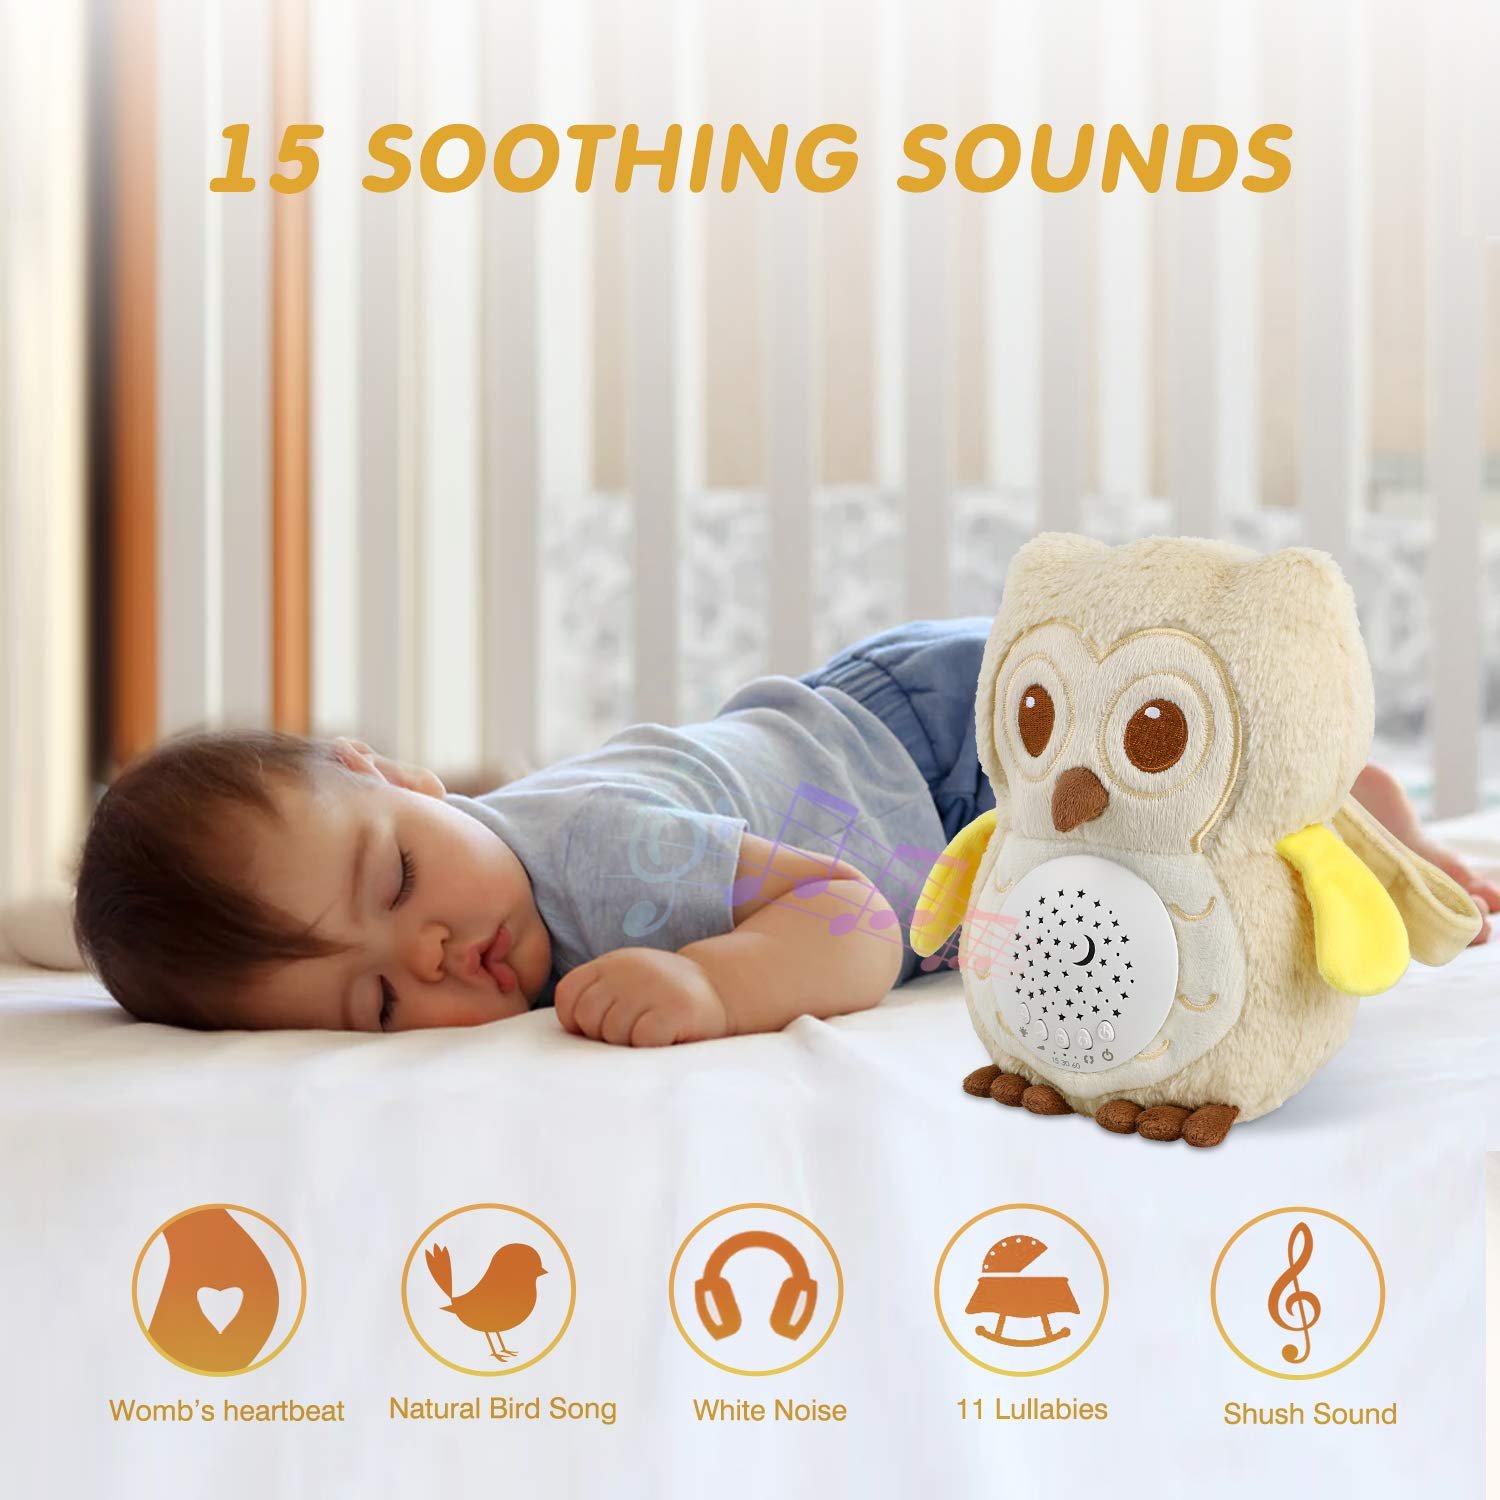 Lullabies /& Shusher White Noise Machine Sound Soother Toddler Crib Sleep Aid Baby Shower Gifts Portable Owl Plush Toy Nursery Decor Night Light Projector BEREST Baby Sleep Soother Owl